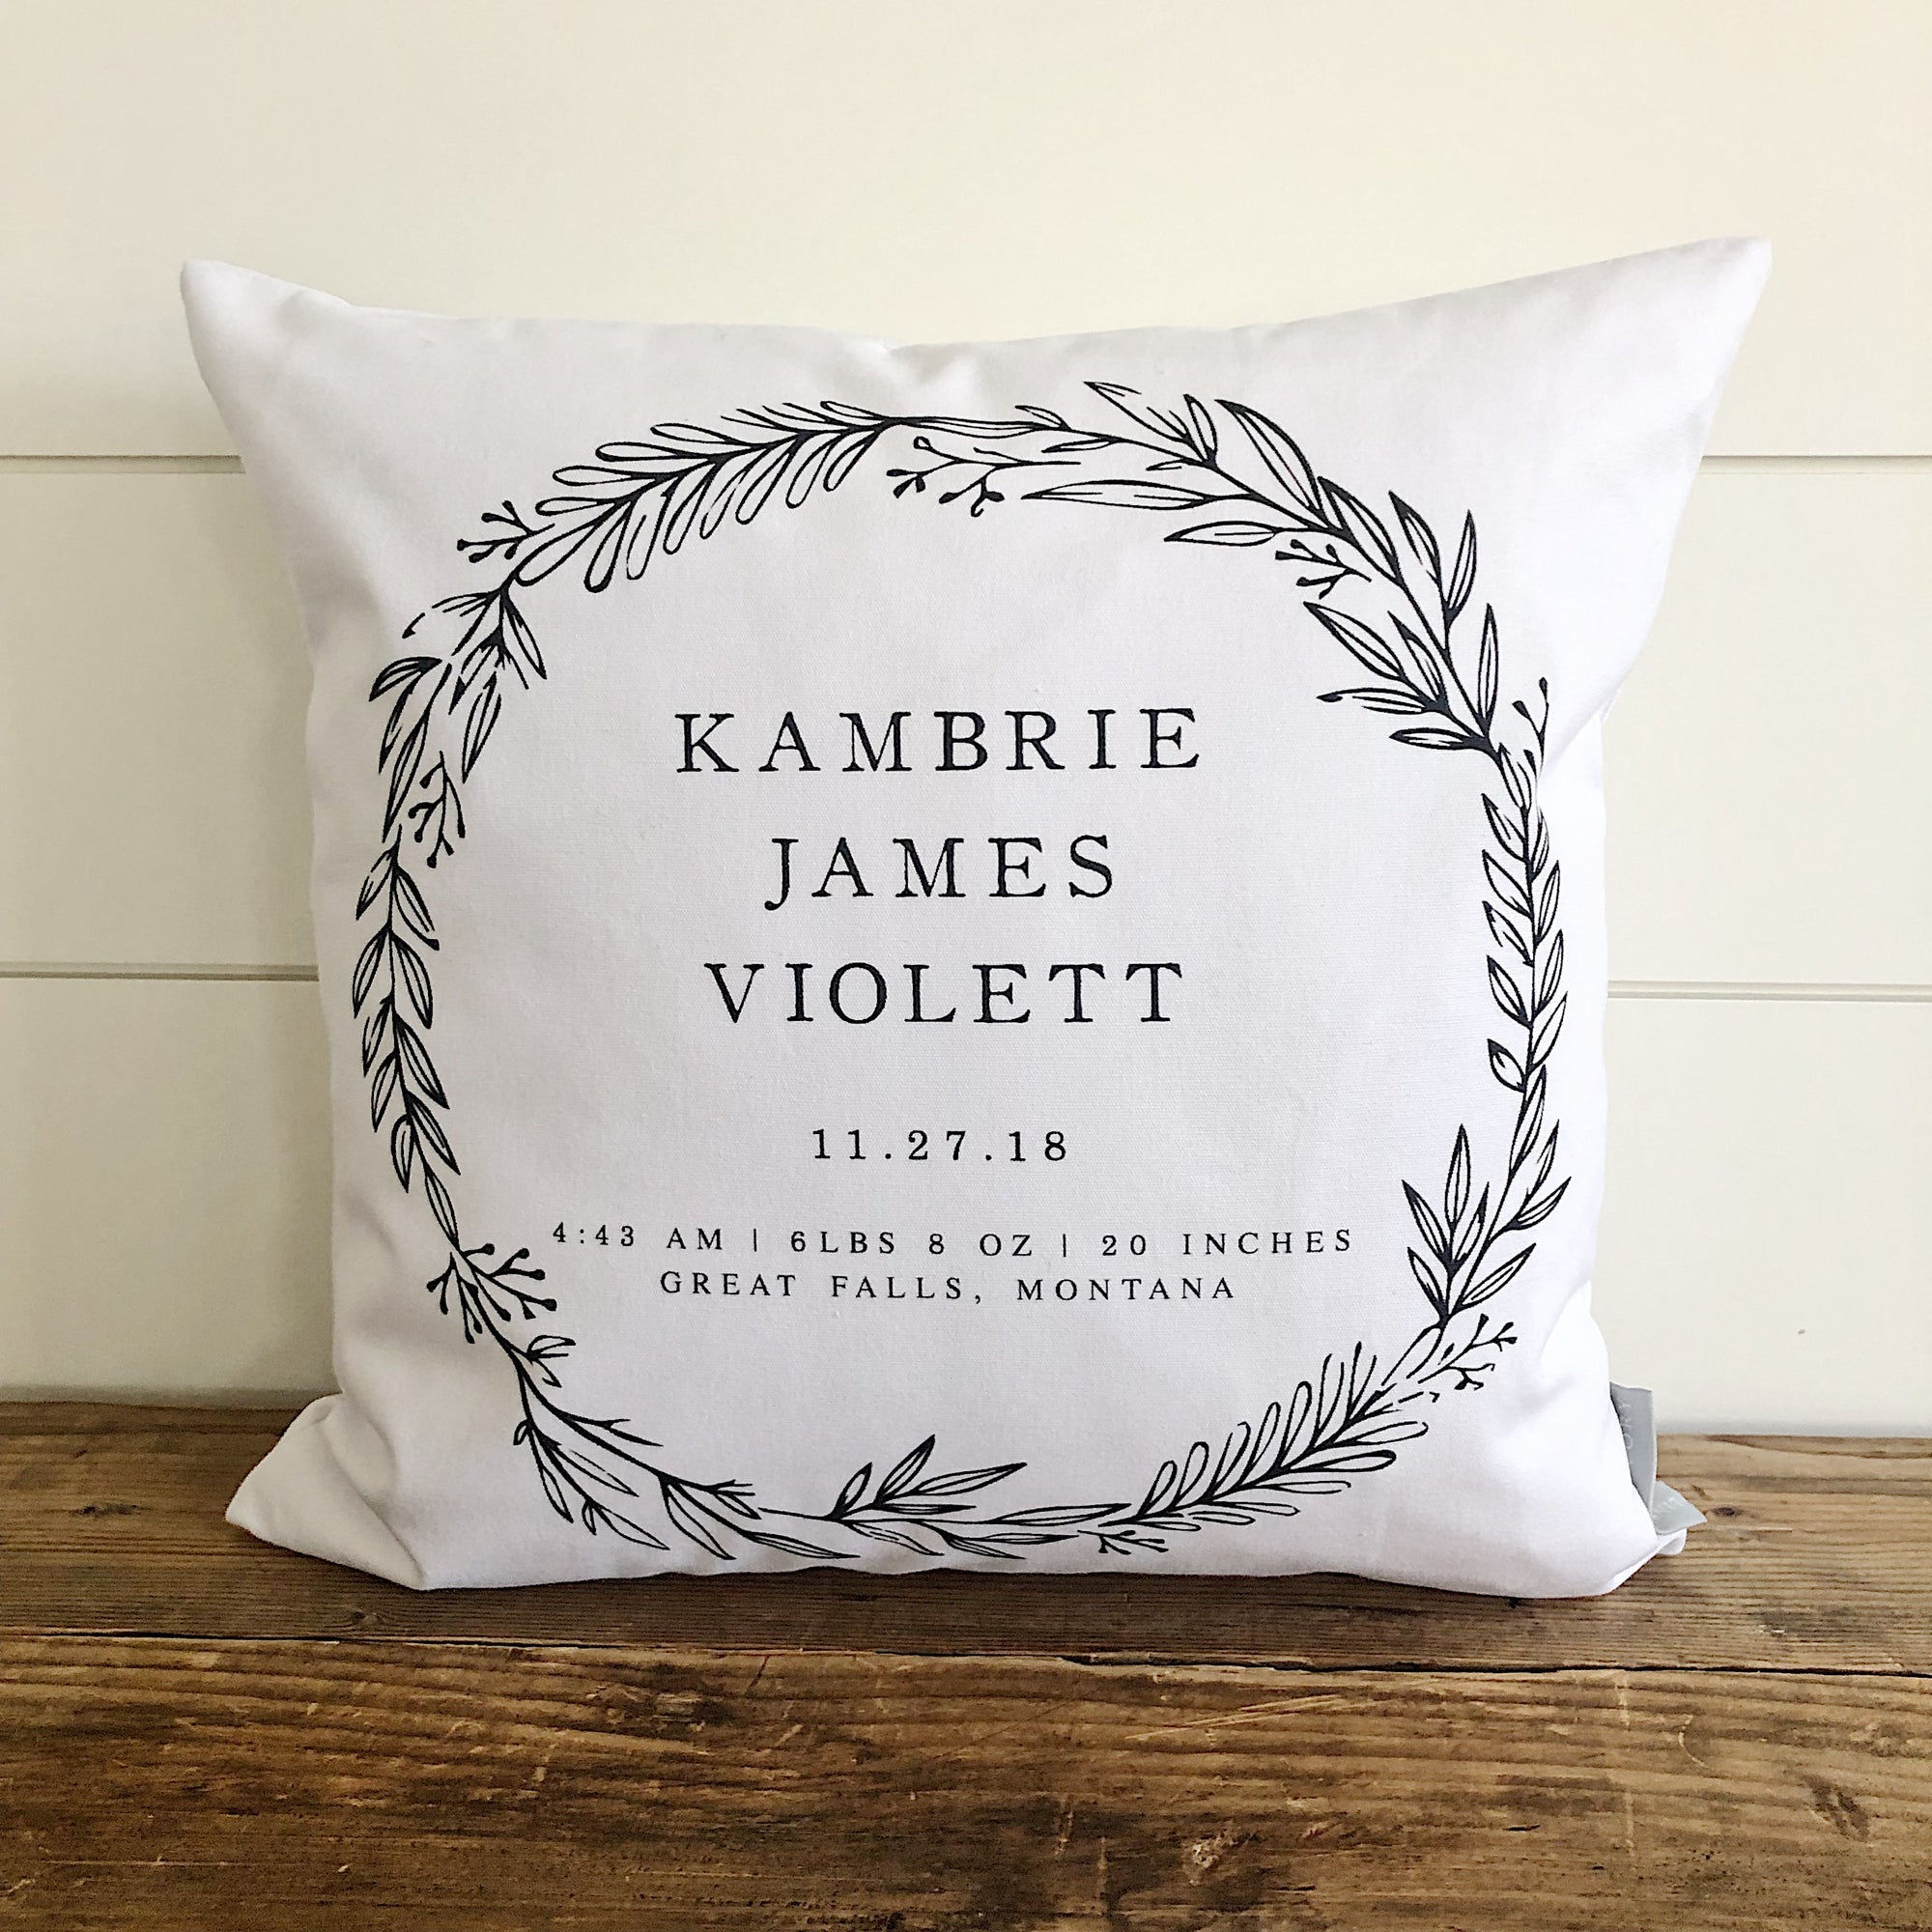 Floral Wreath Birth Announcement Pillow Cover - Linen and Ivory